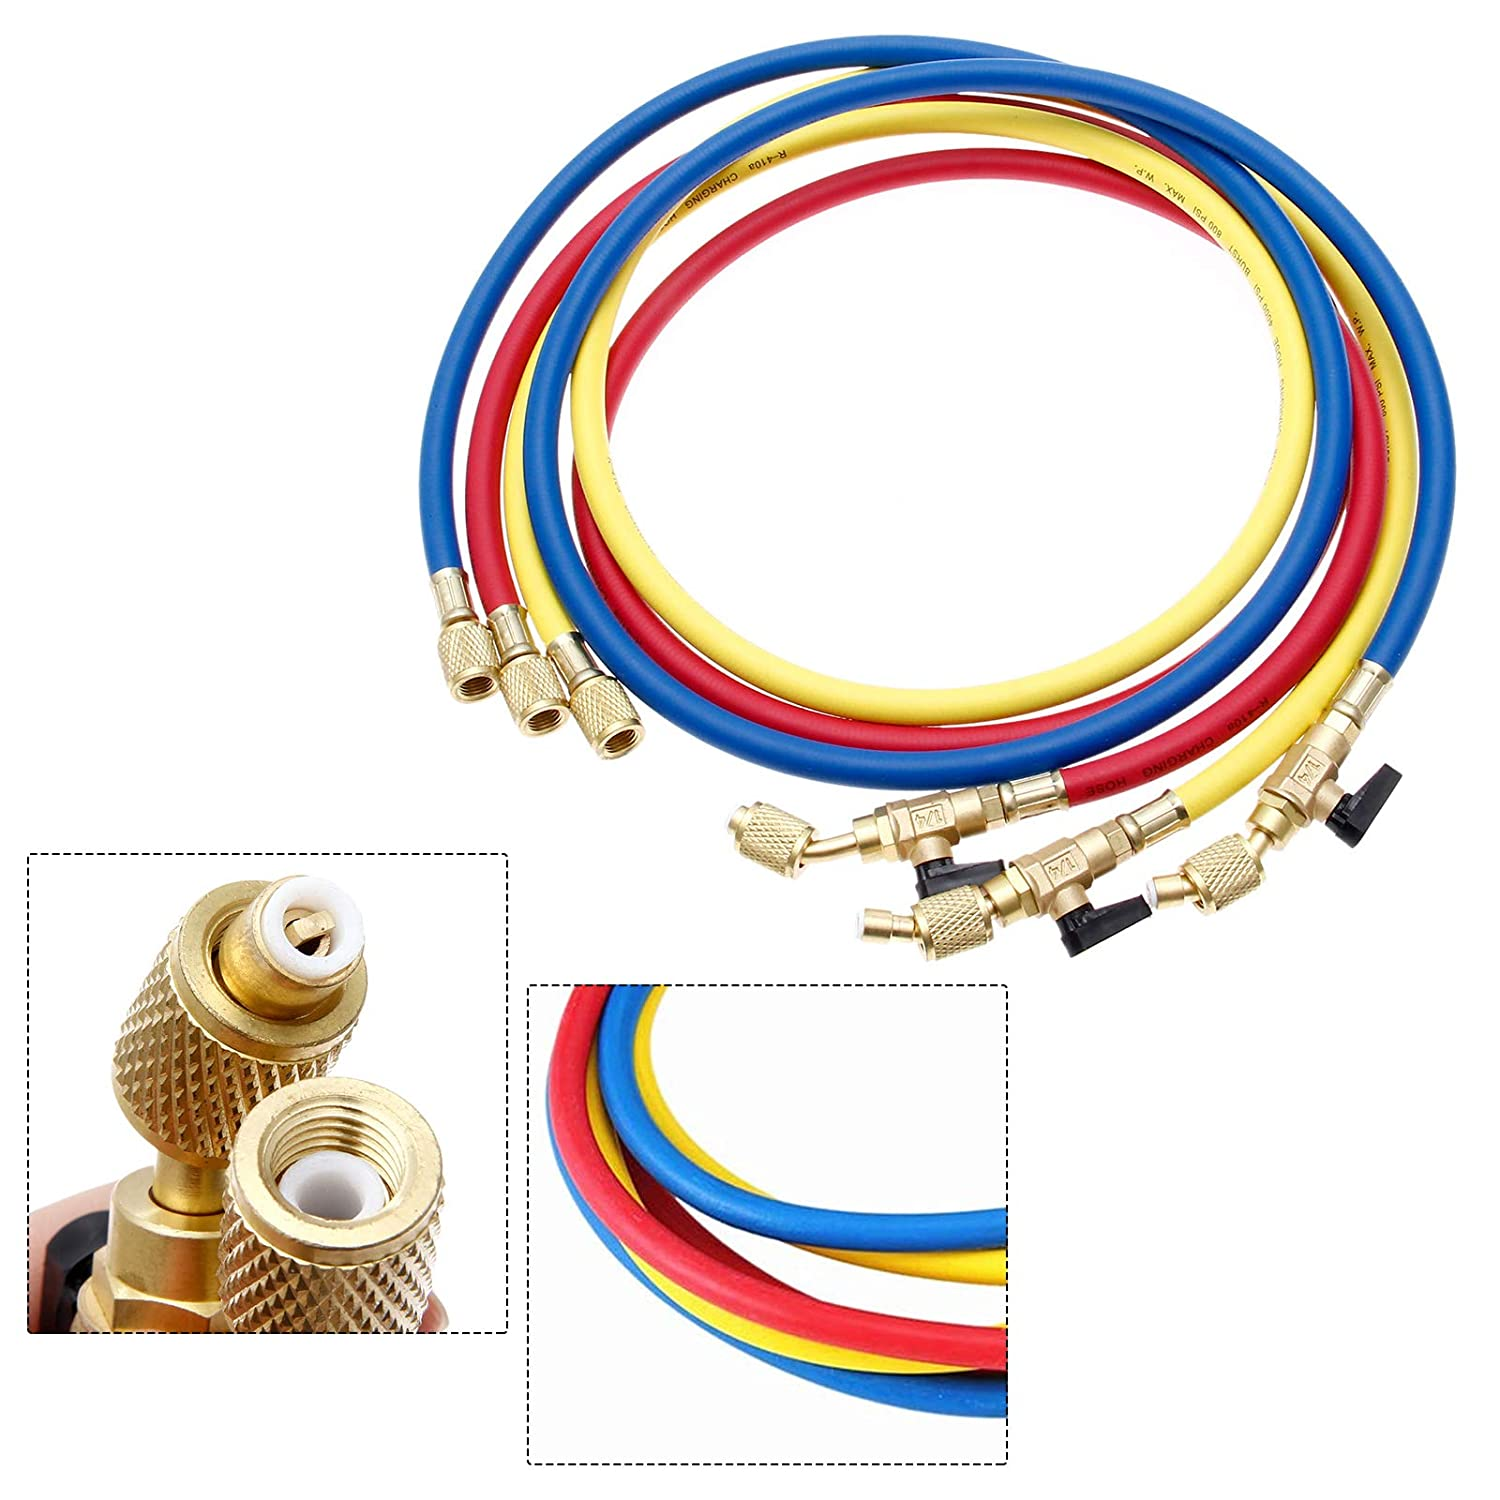 Refrigerant Charging Hose HVAC 1//4 SAE R134A 800 PSI Fit for R12 R22 R502 R404 Coolant Adding and Air Condition Maintenance 3-Color 3 Pcs